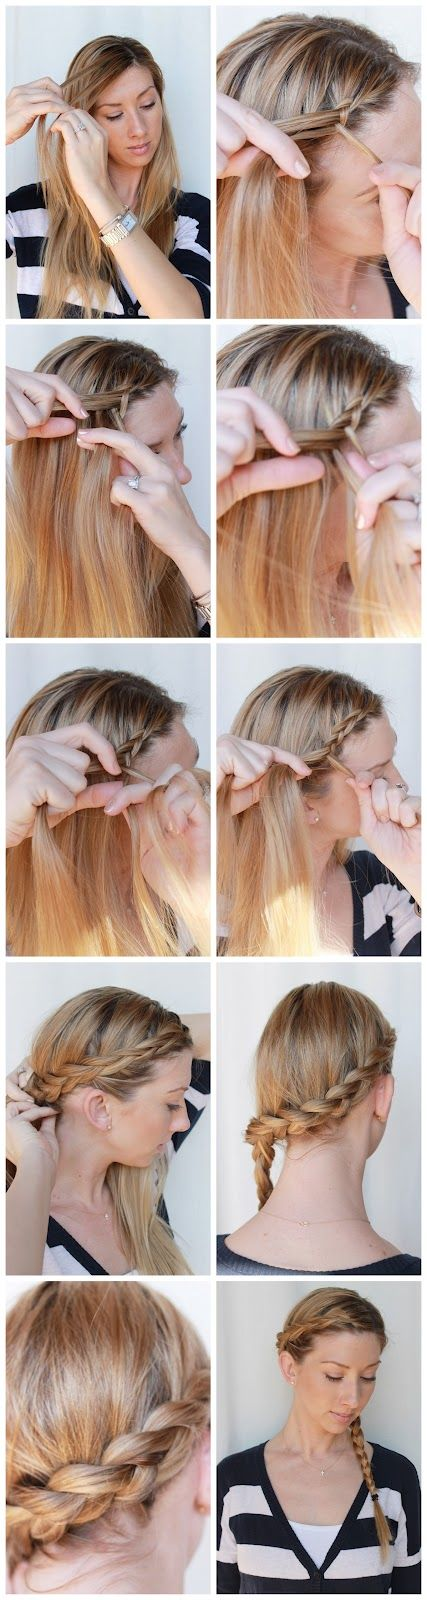 How to: Wrap around side braid. can't wait till my hair grows out so i can start doing these type of hair styles again